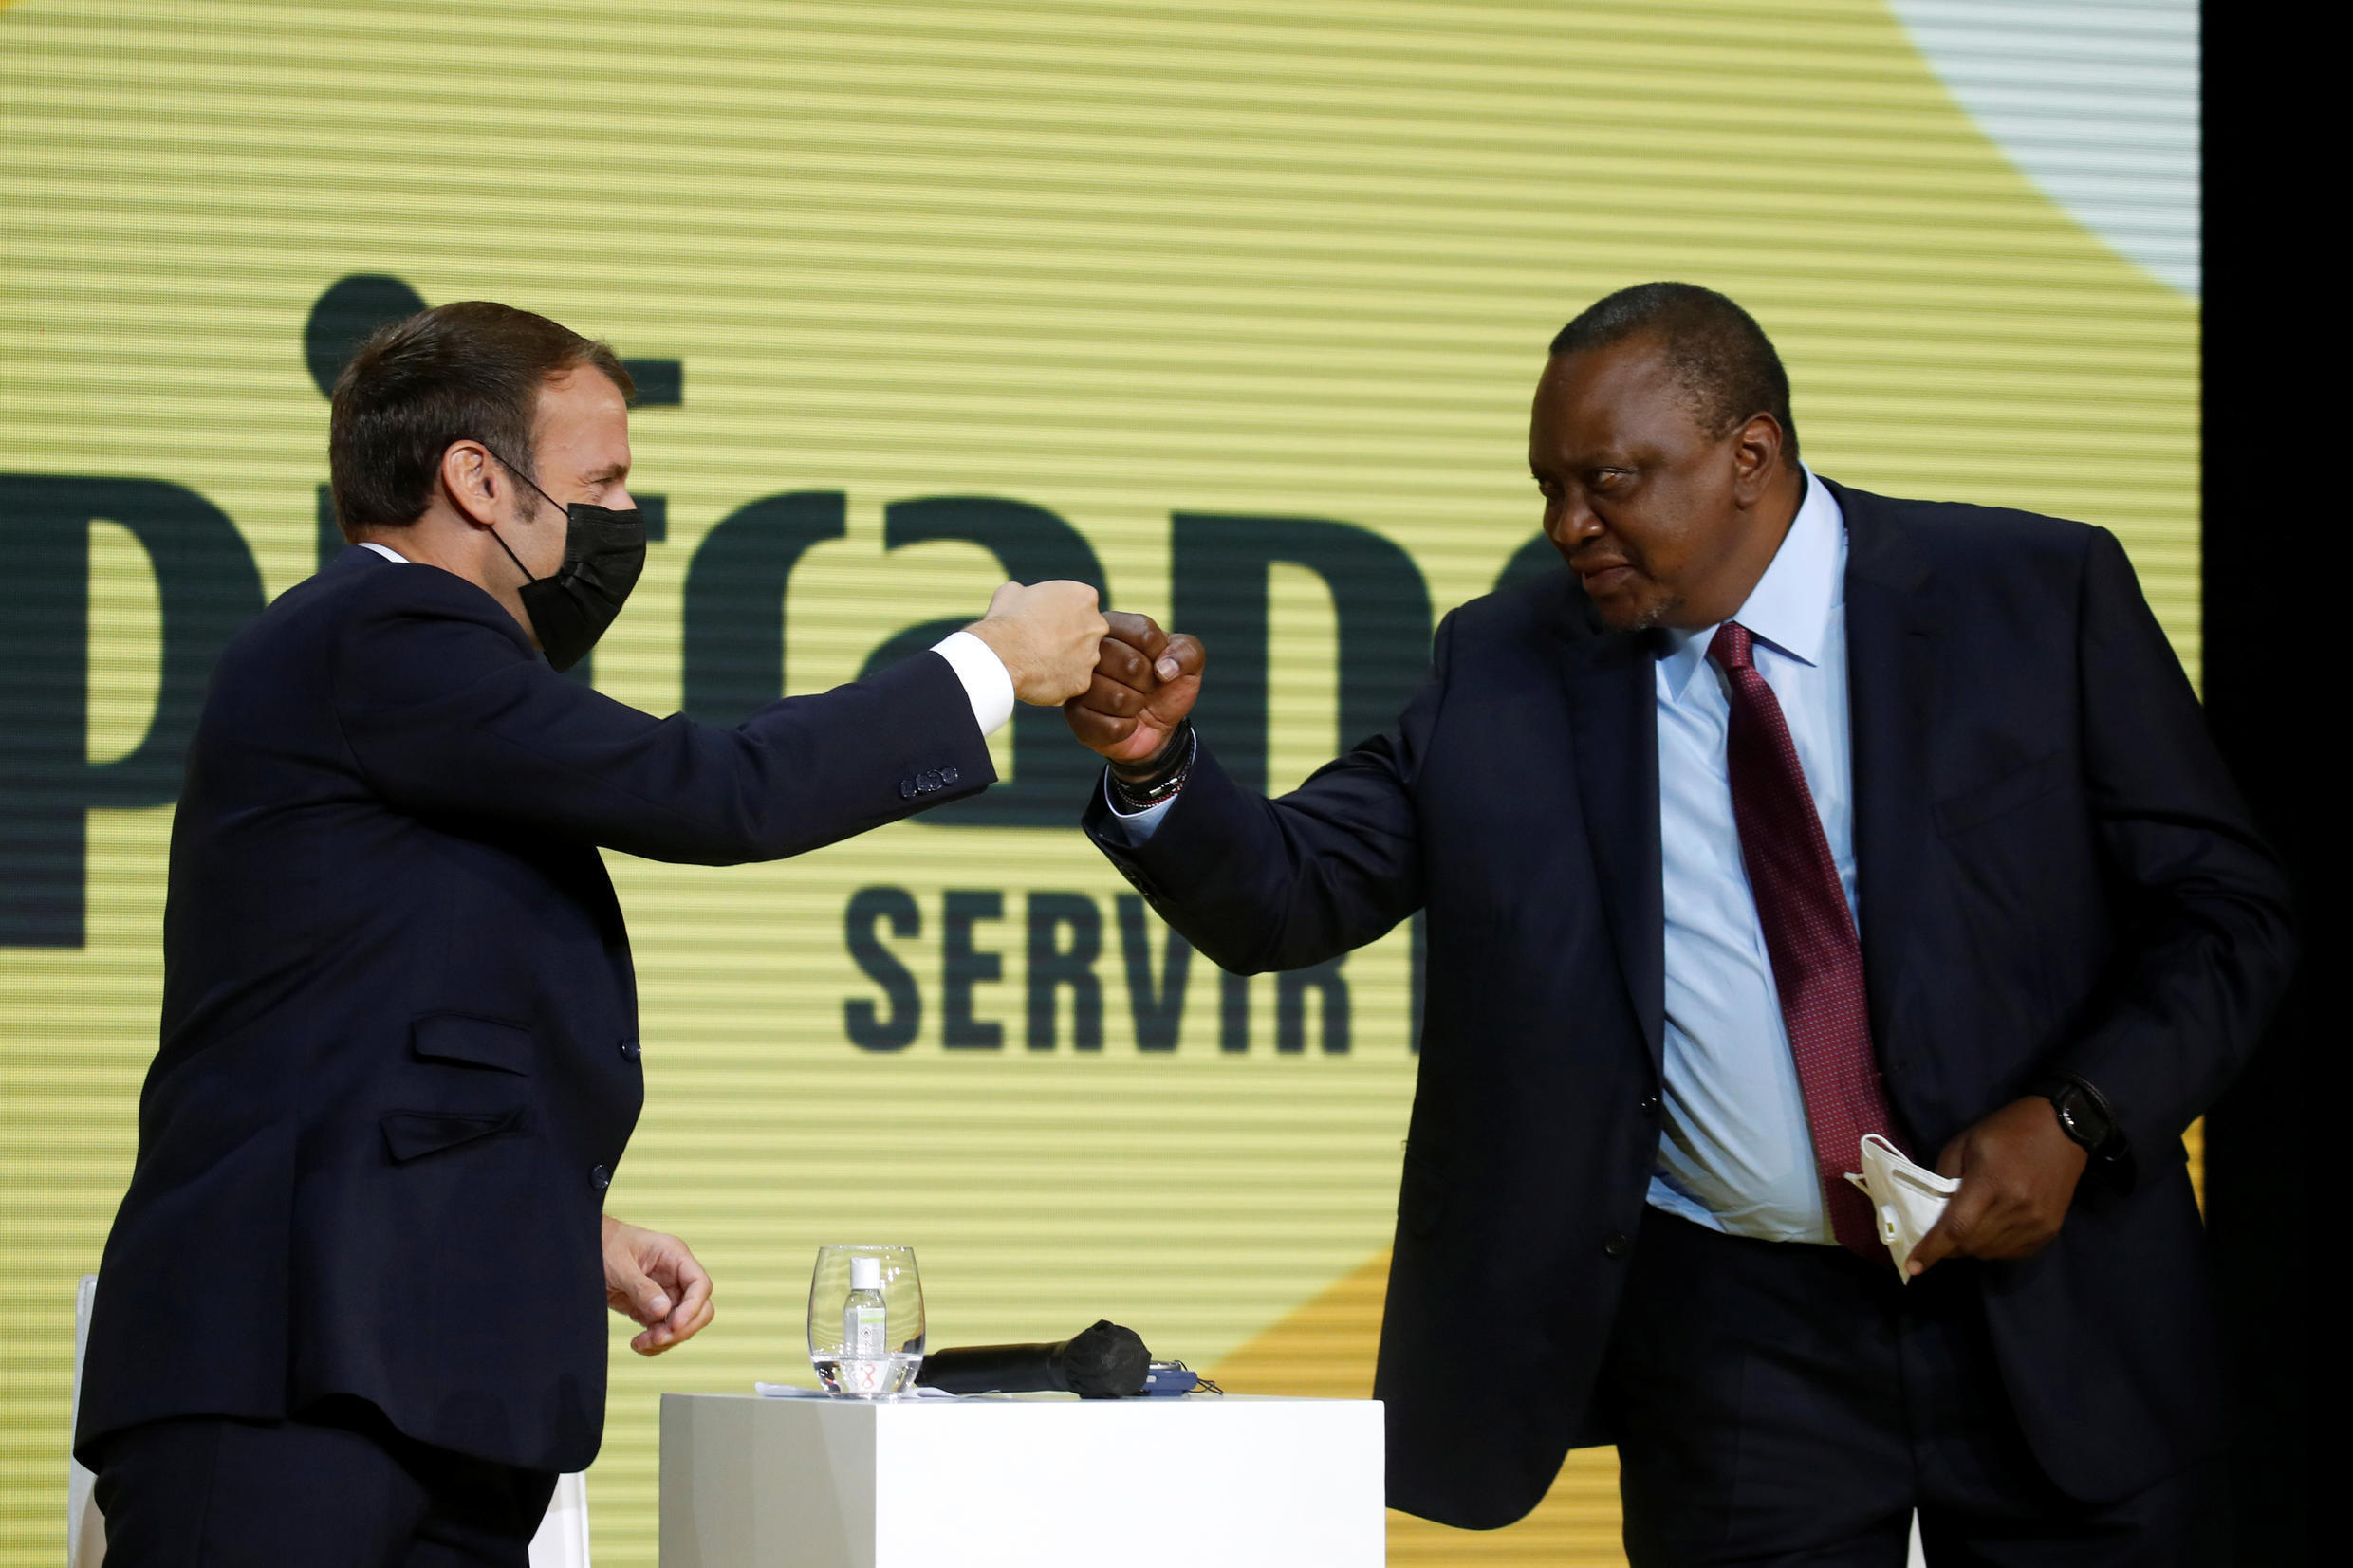 """French President Emmanuel Macron and Kenya's President Uhuru Kenyatta fist bumps at the annual tech conference """"Inno Generation""""organized by French investment bank Bpifrance in Paris, France, October 1, 2020."""